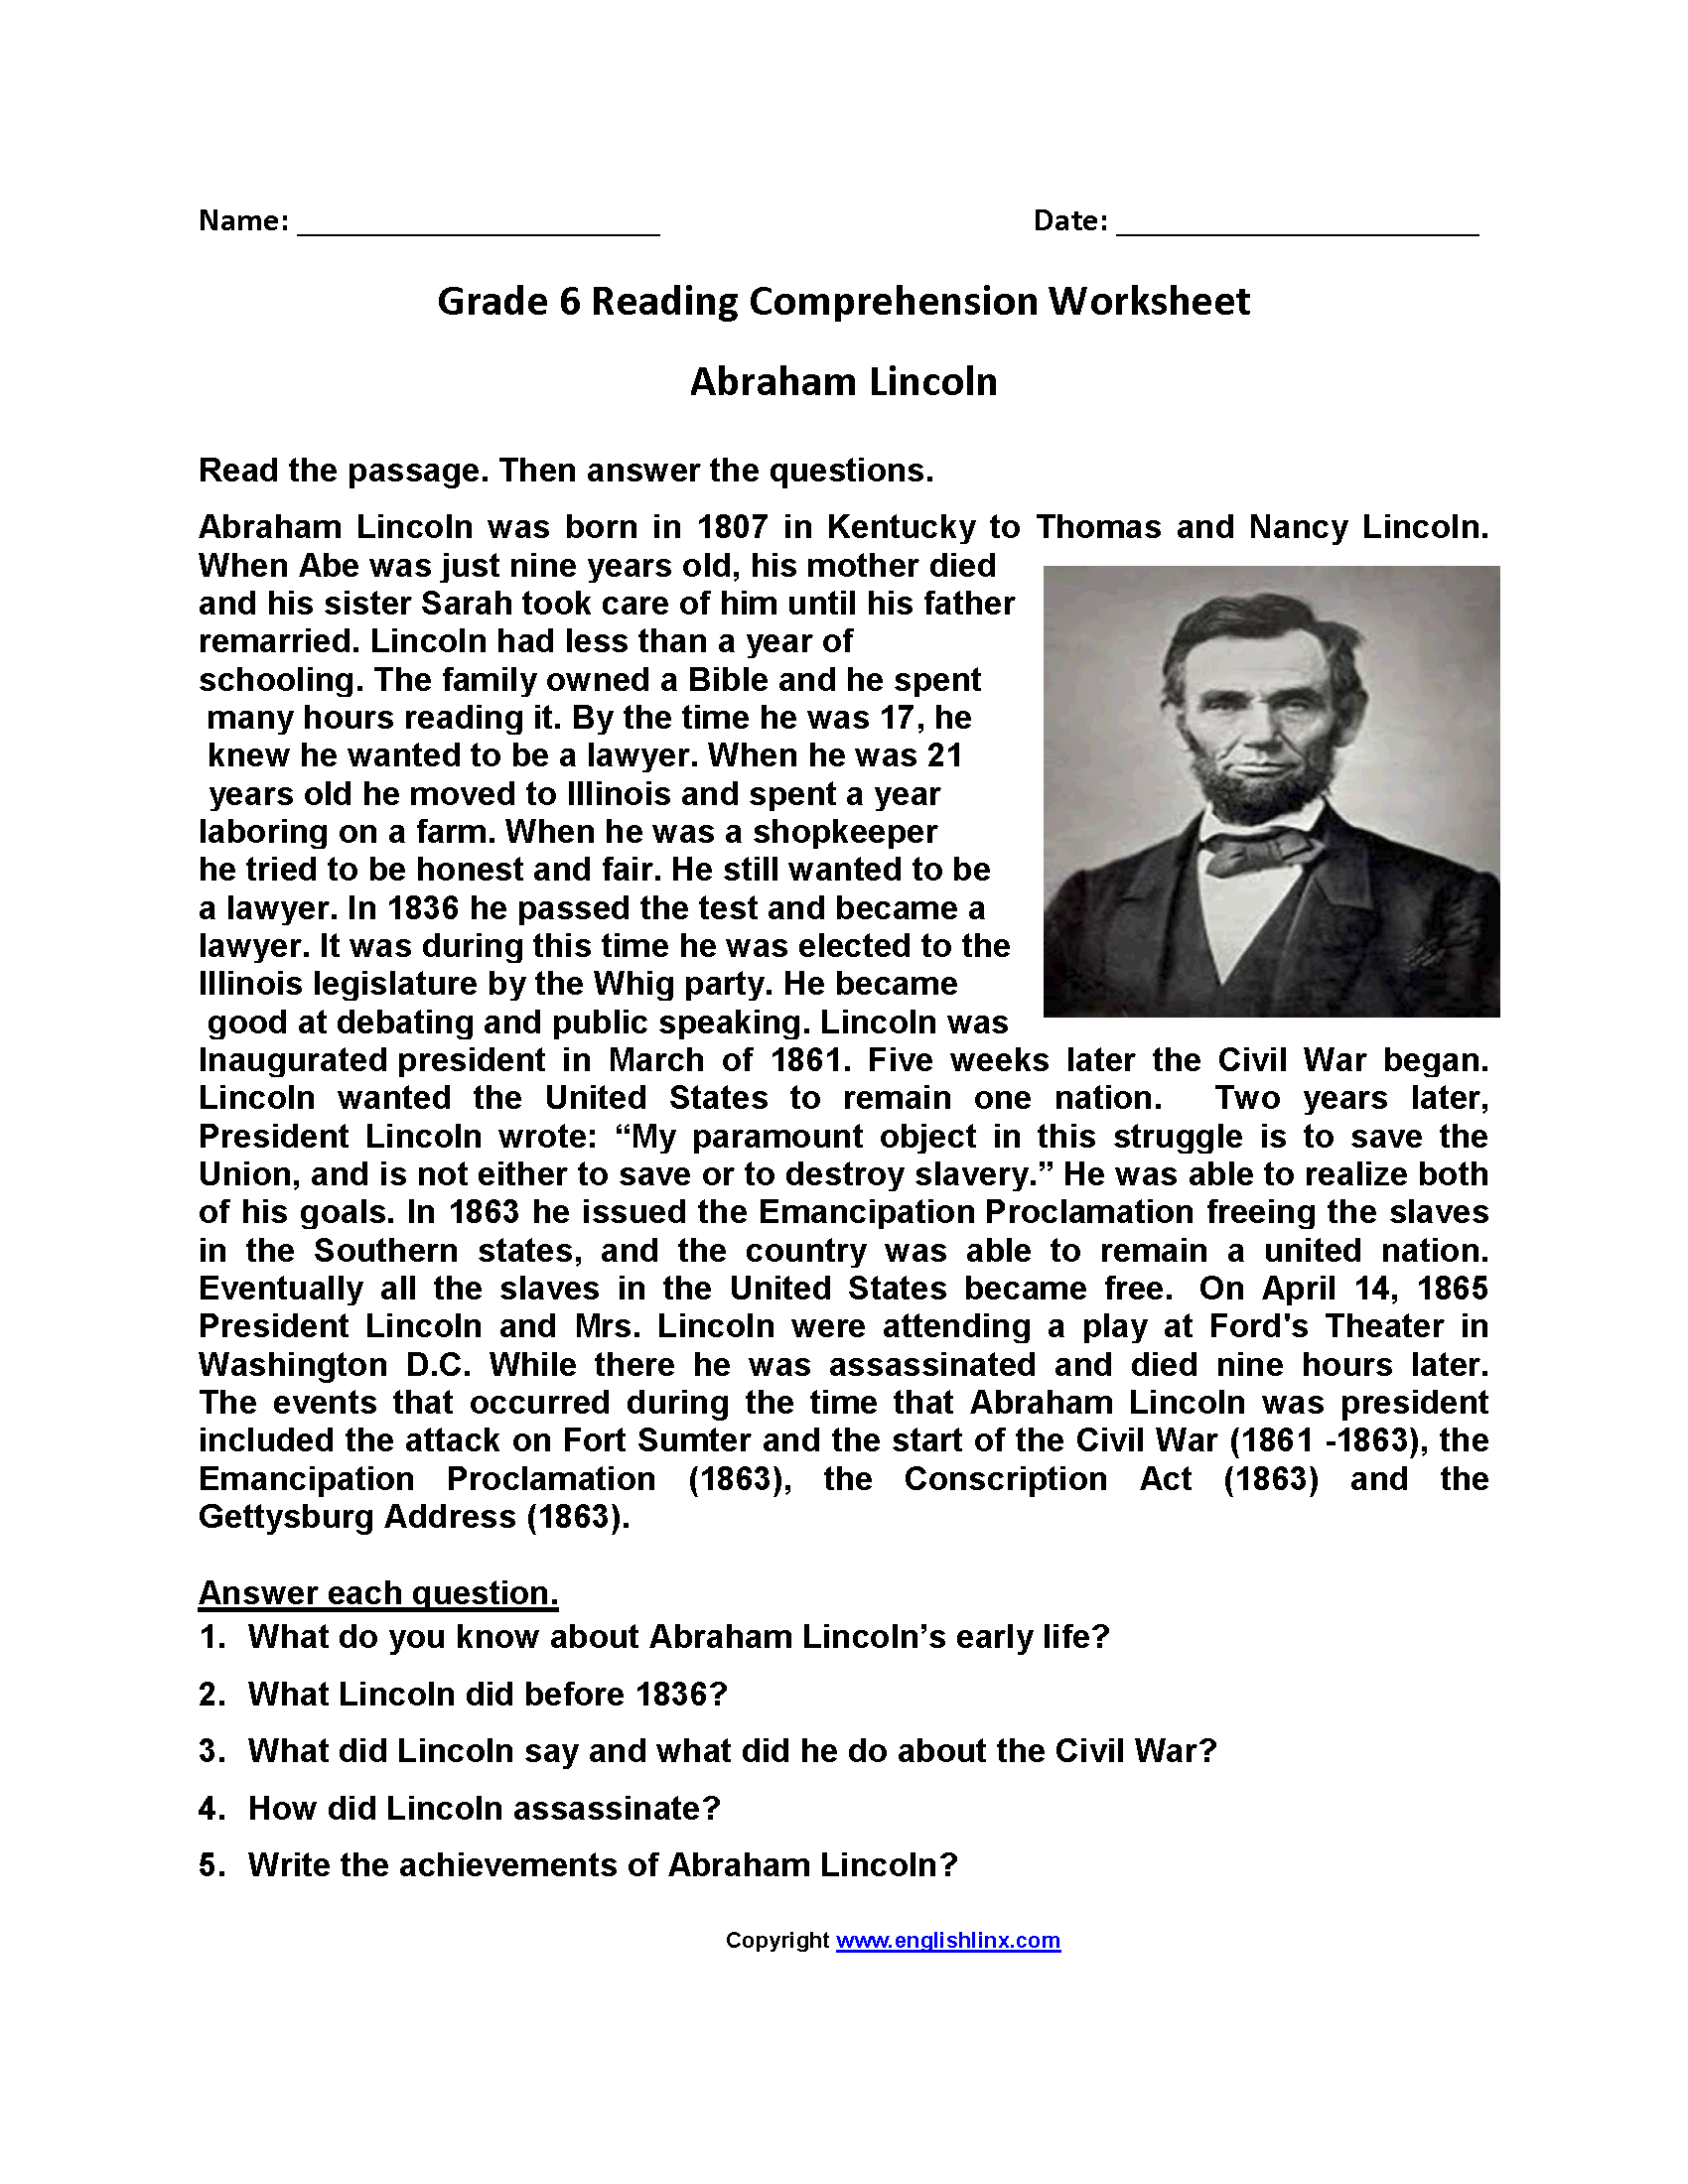 Worksheets Reading Comprehension Worksheets 8th Grade english worksheets reading sixth grade worksheets